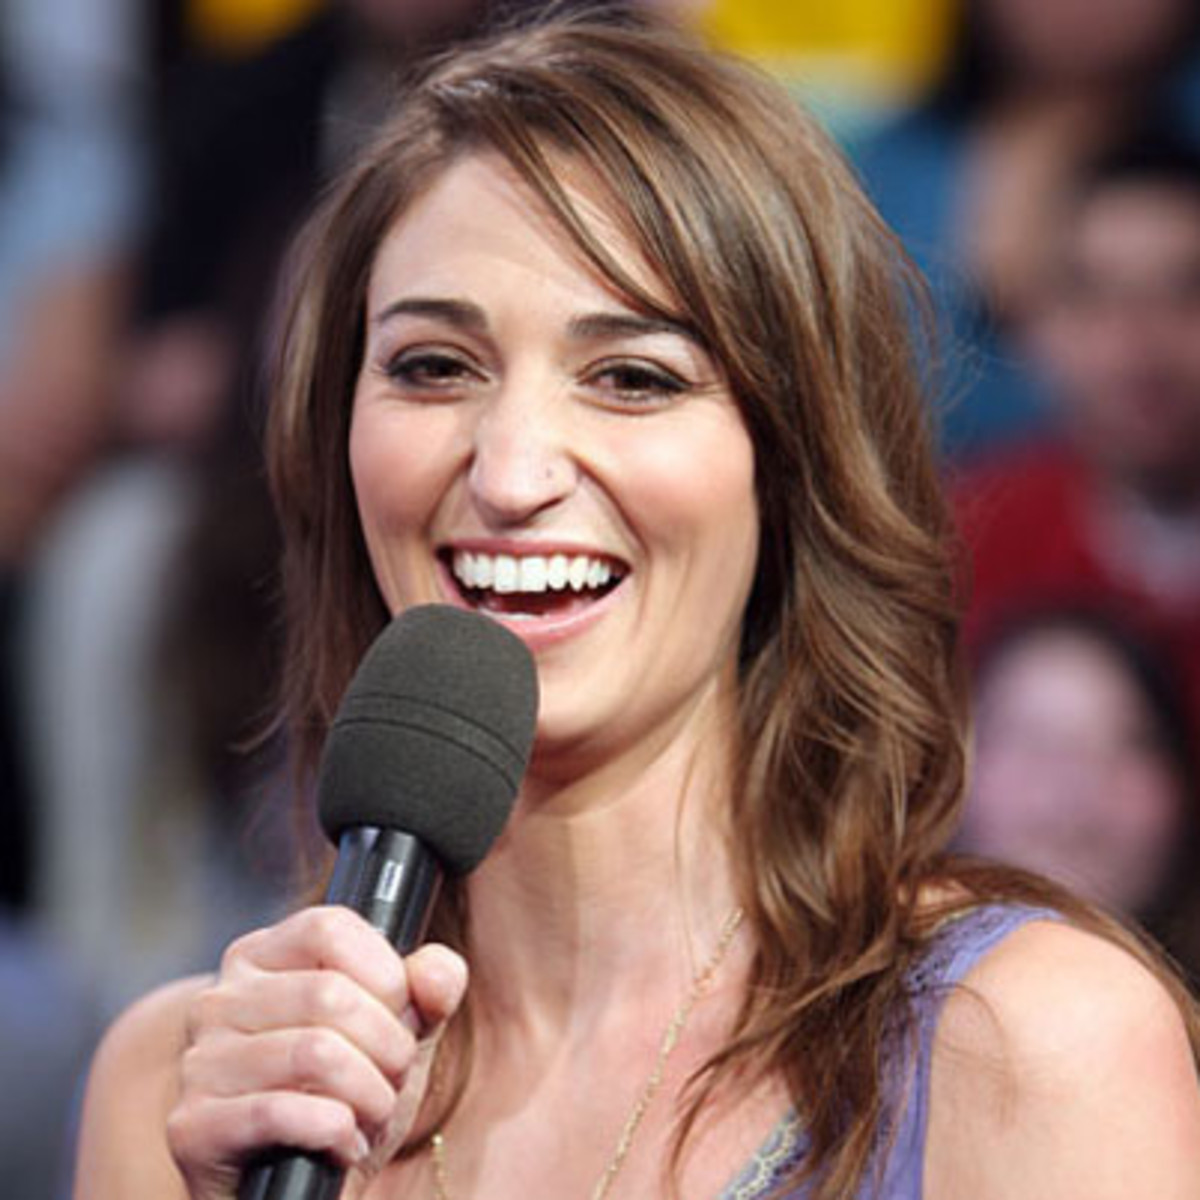 NEW YORK - FEBRUARY 27:  (U.S. TABS OUT) Singer Sara Bareilles appears onstage during MTV's Total Request Live at the MTV Times Square Studios on February 27, 2008 in New York City.  (Photo by Scott Gries/Getty Images)